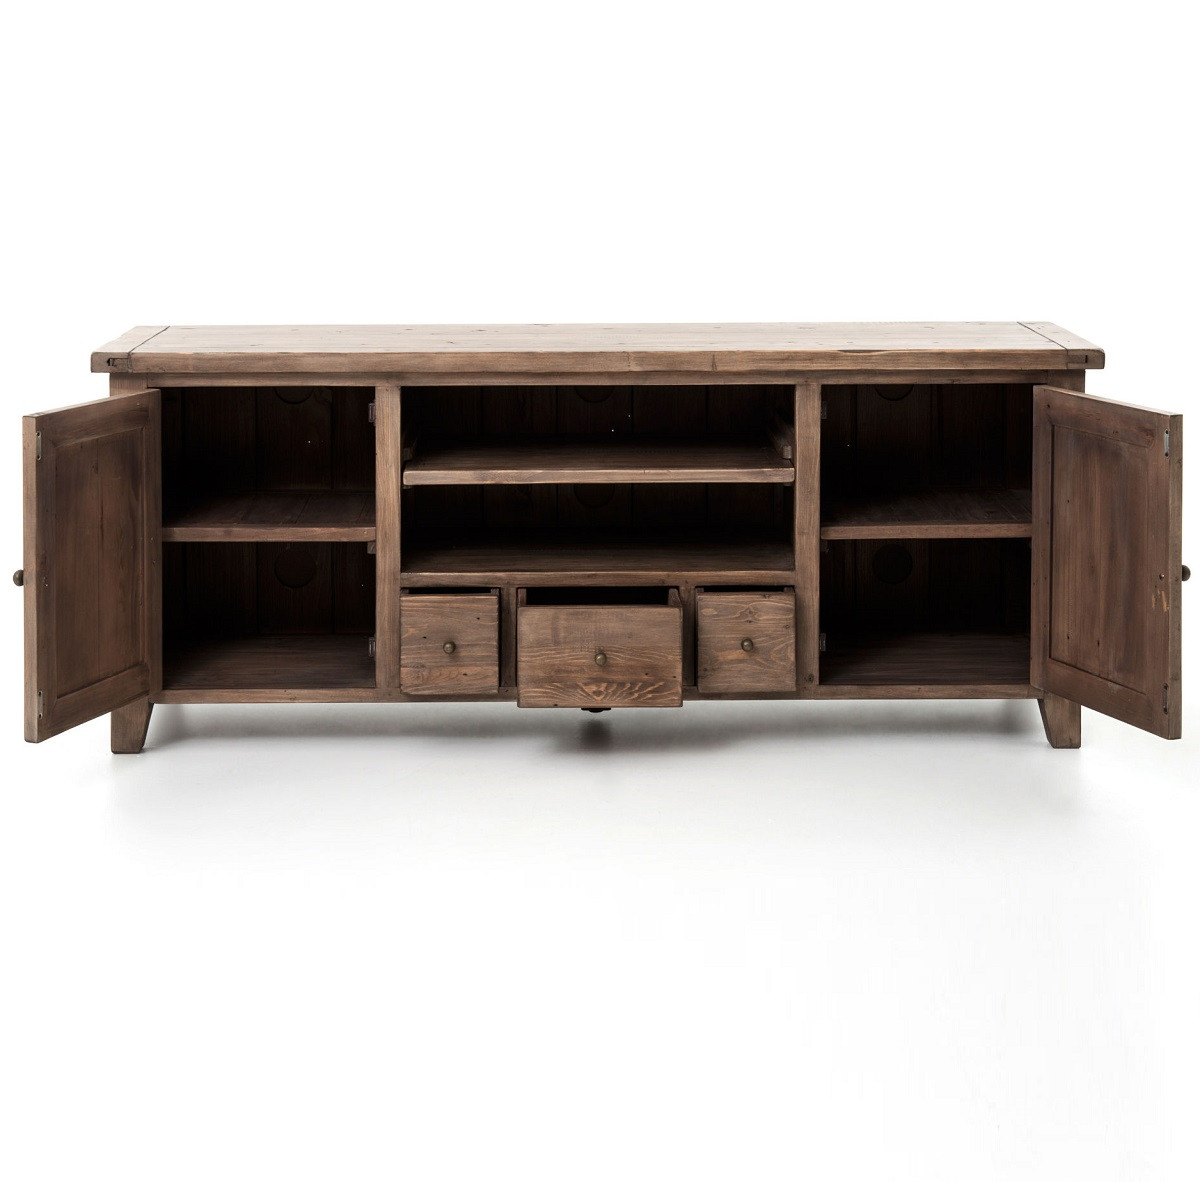 Rustic Media Console Rustic Media Console Front View With